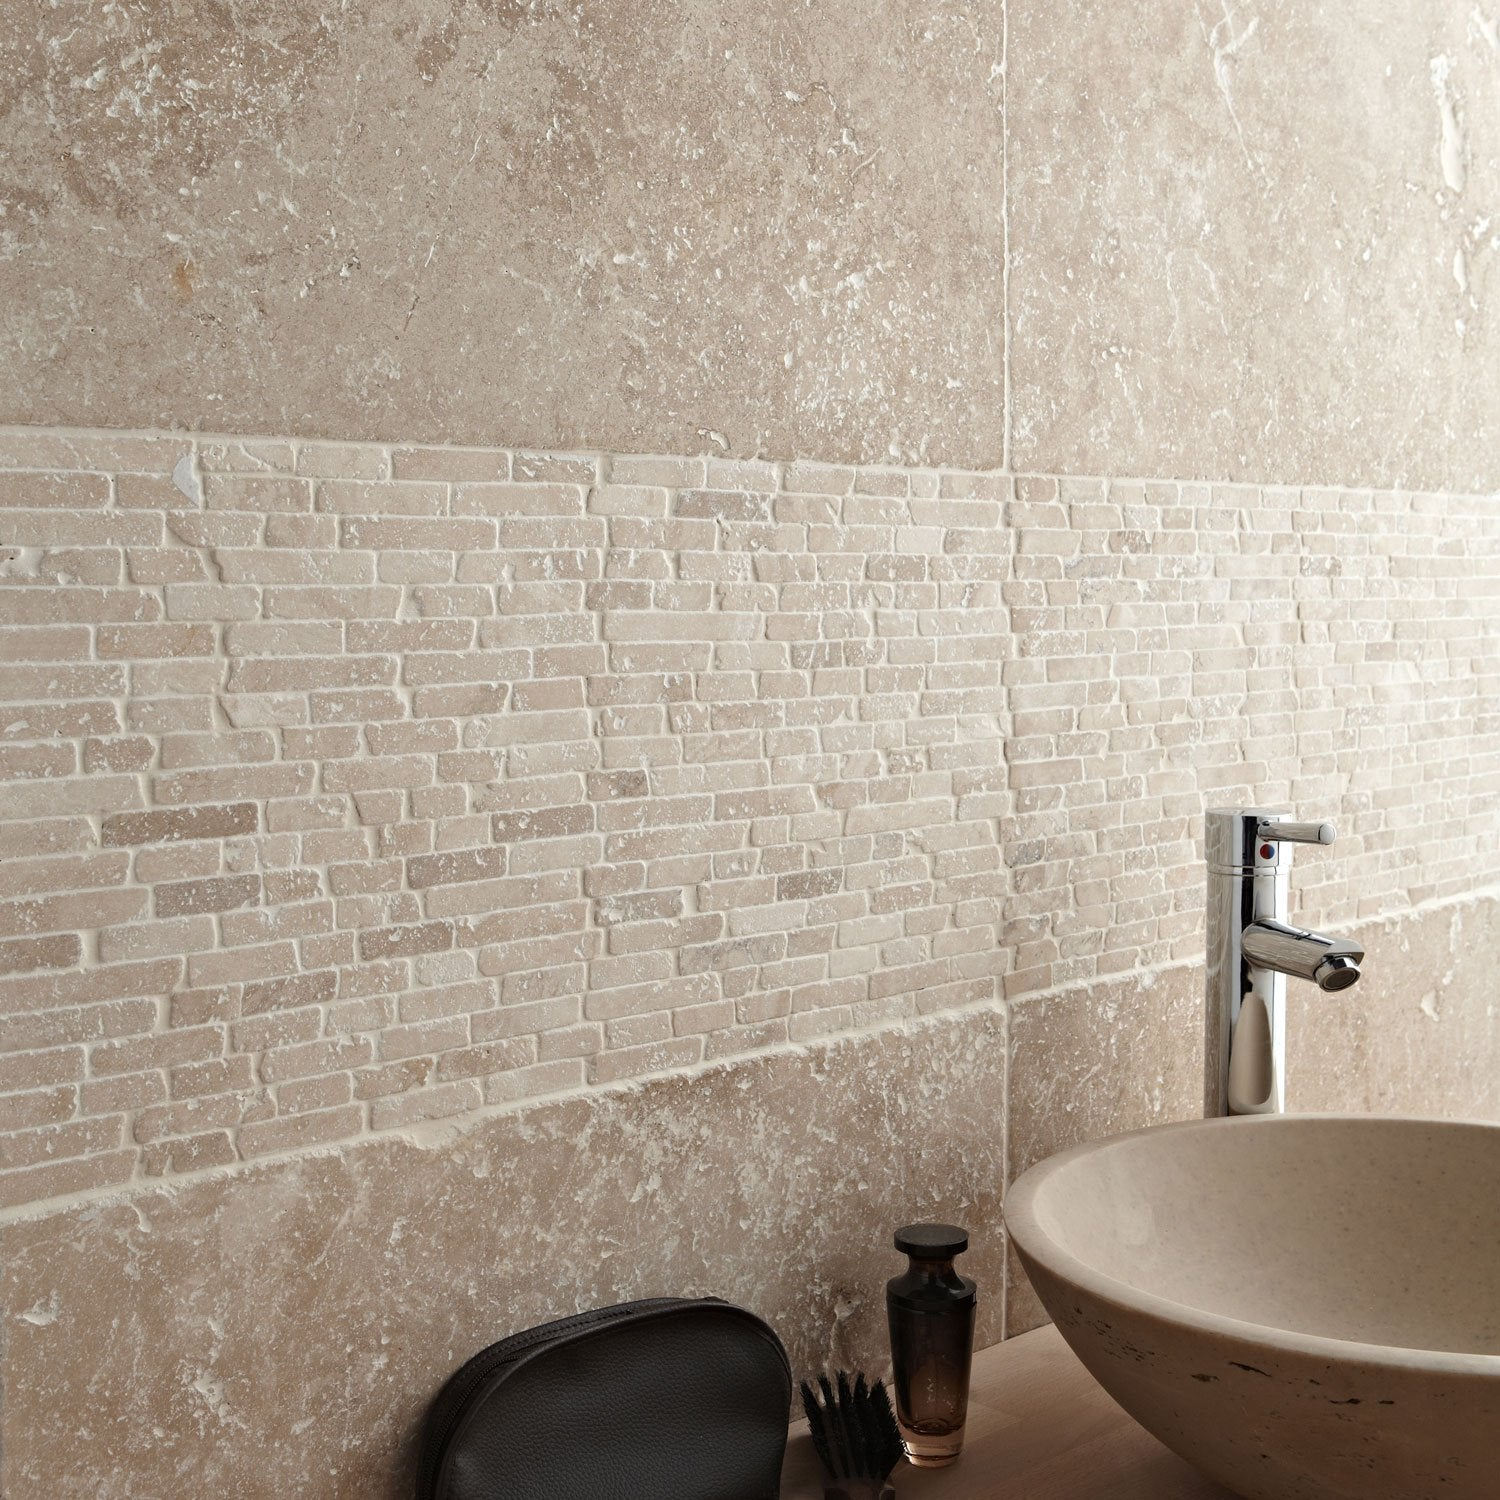 Travertin sol et mur beige effet pierre Travertin l406 x